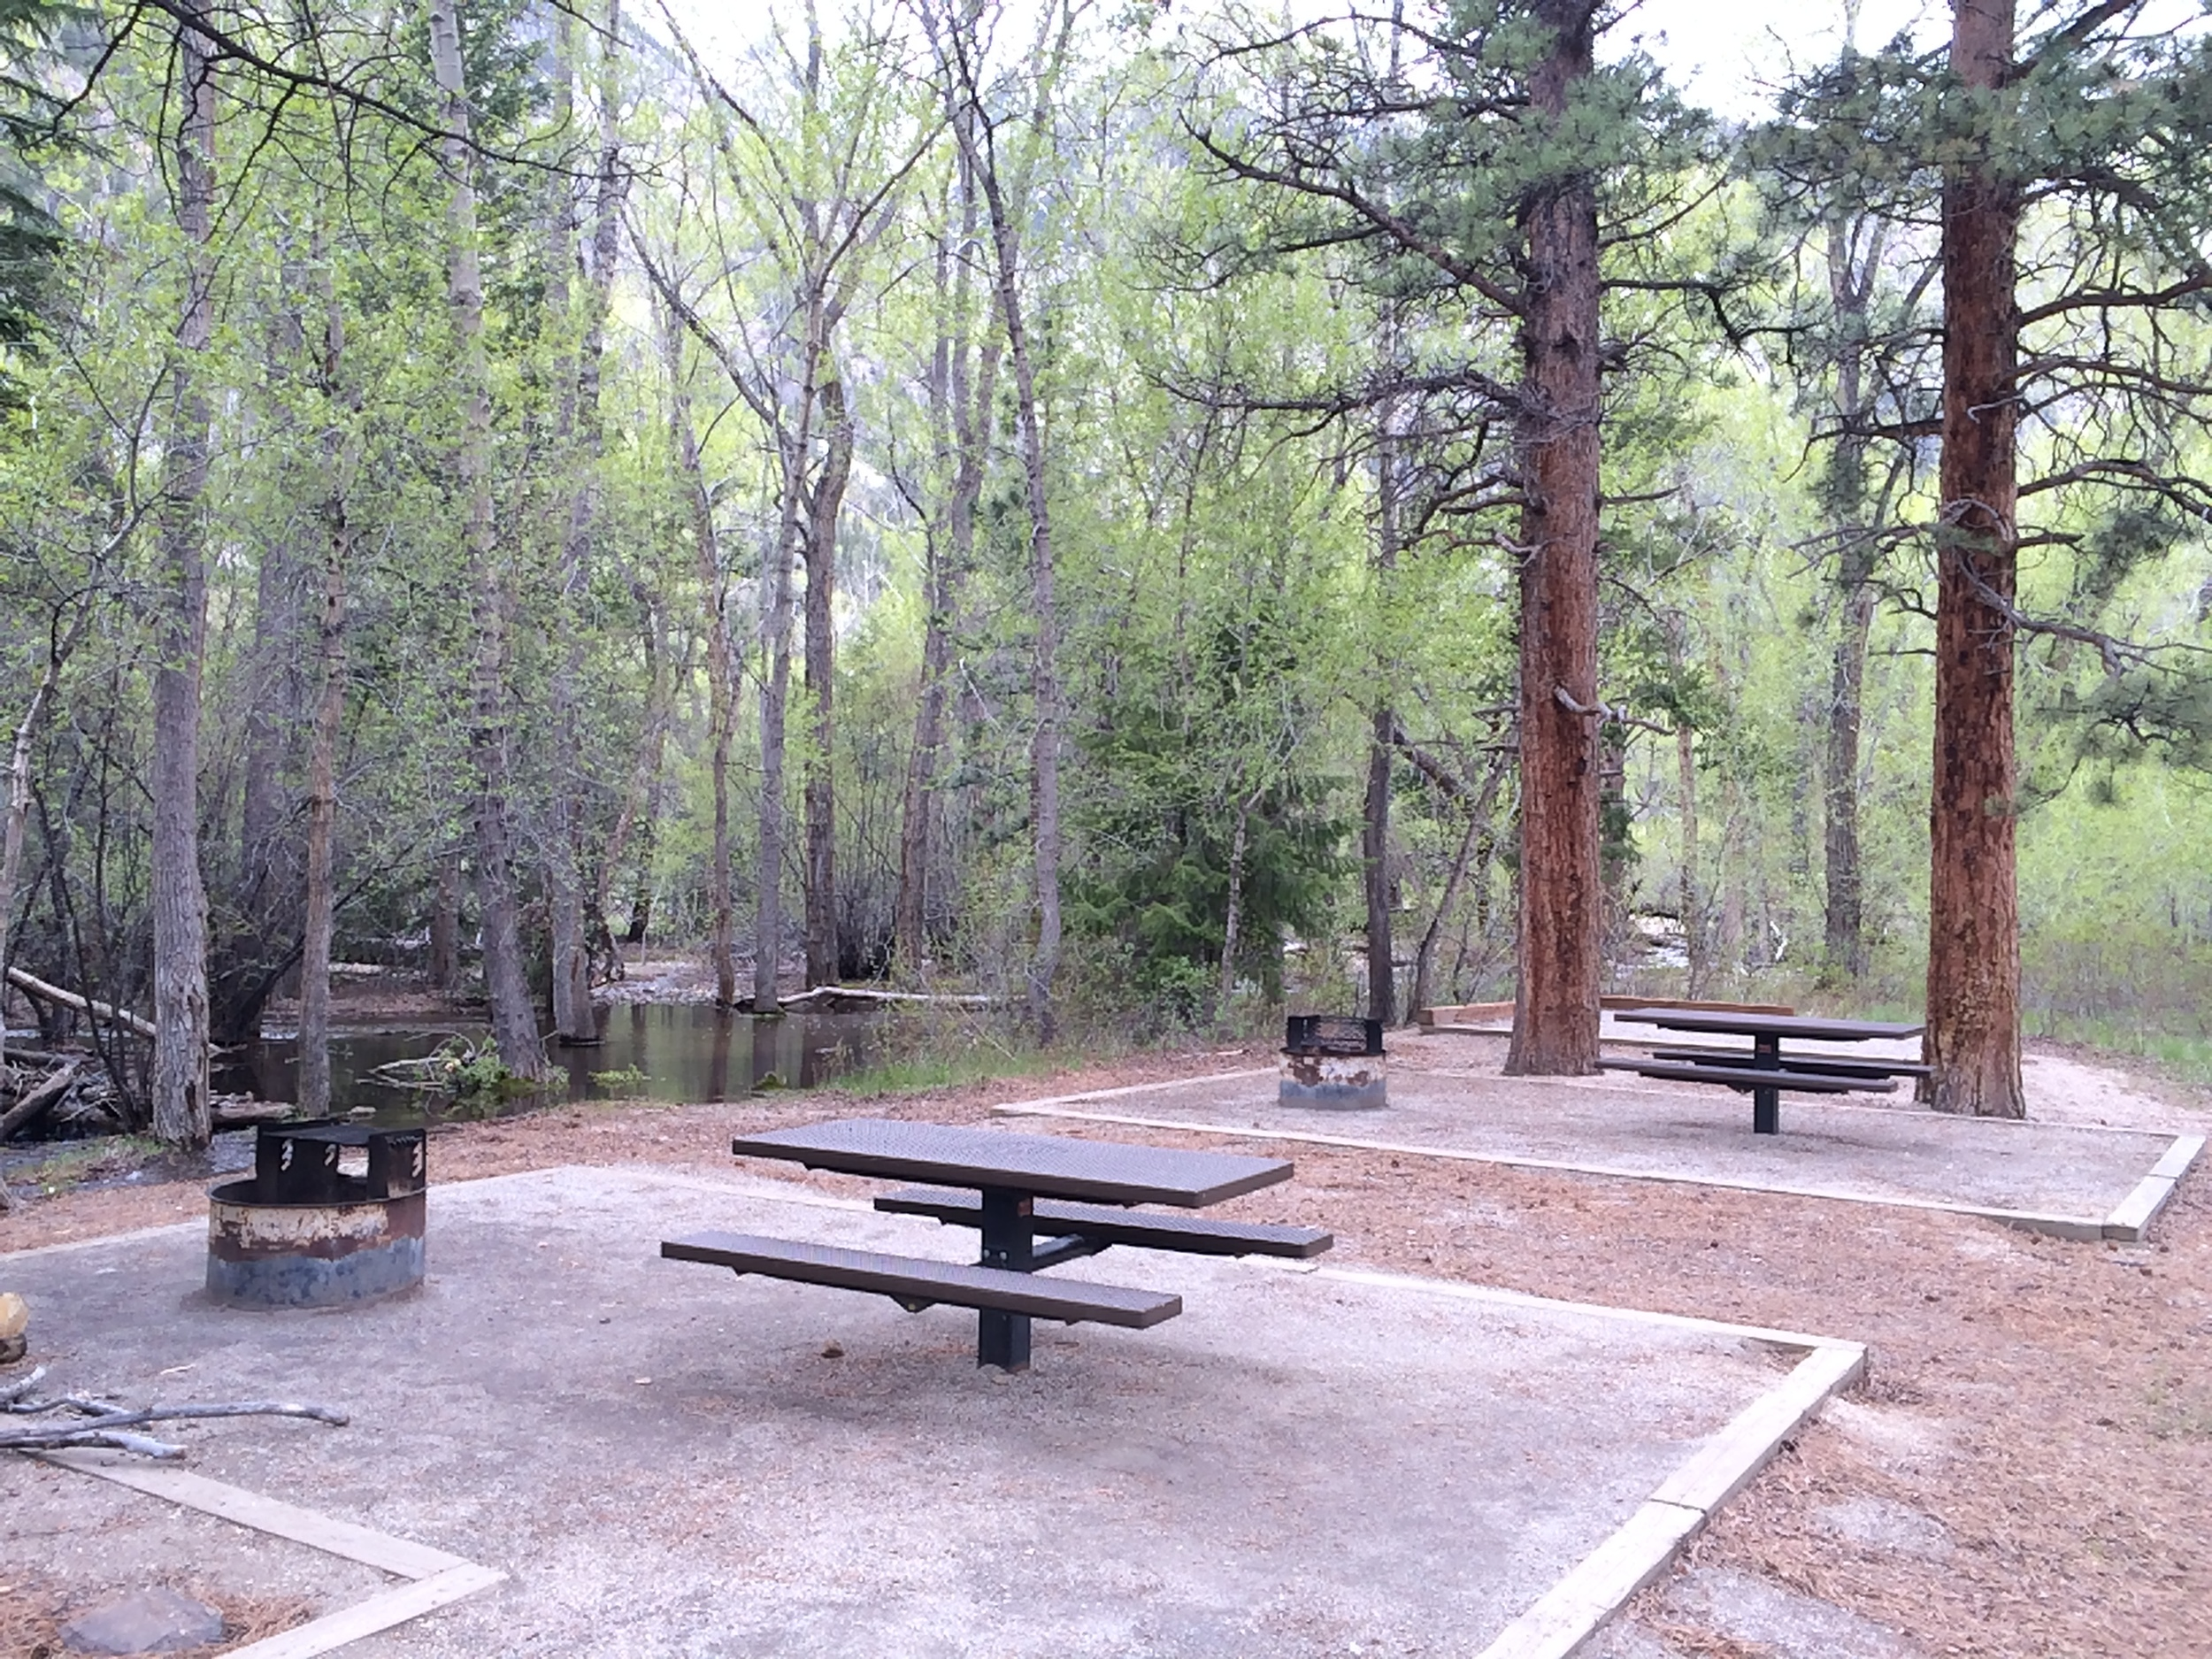 Chalk Lake campground Sites 7 & 6. Slow flowing portion of chalk creek is next to camp